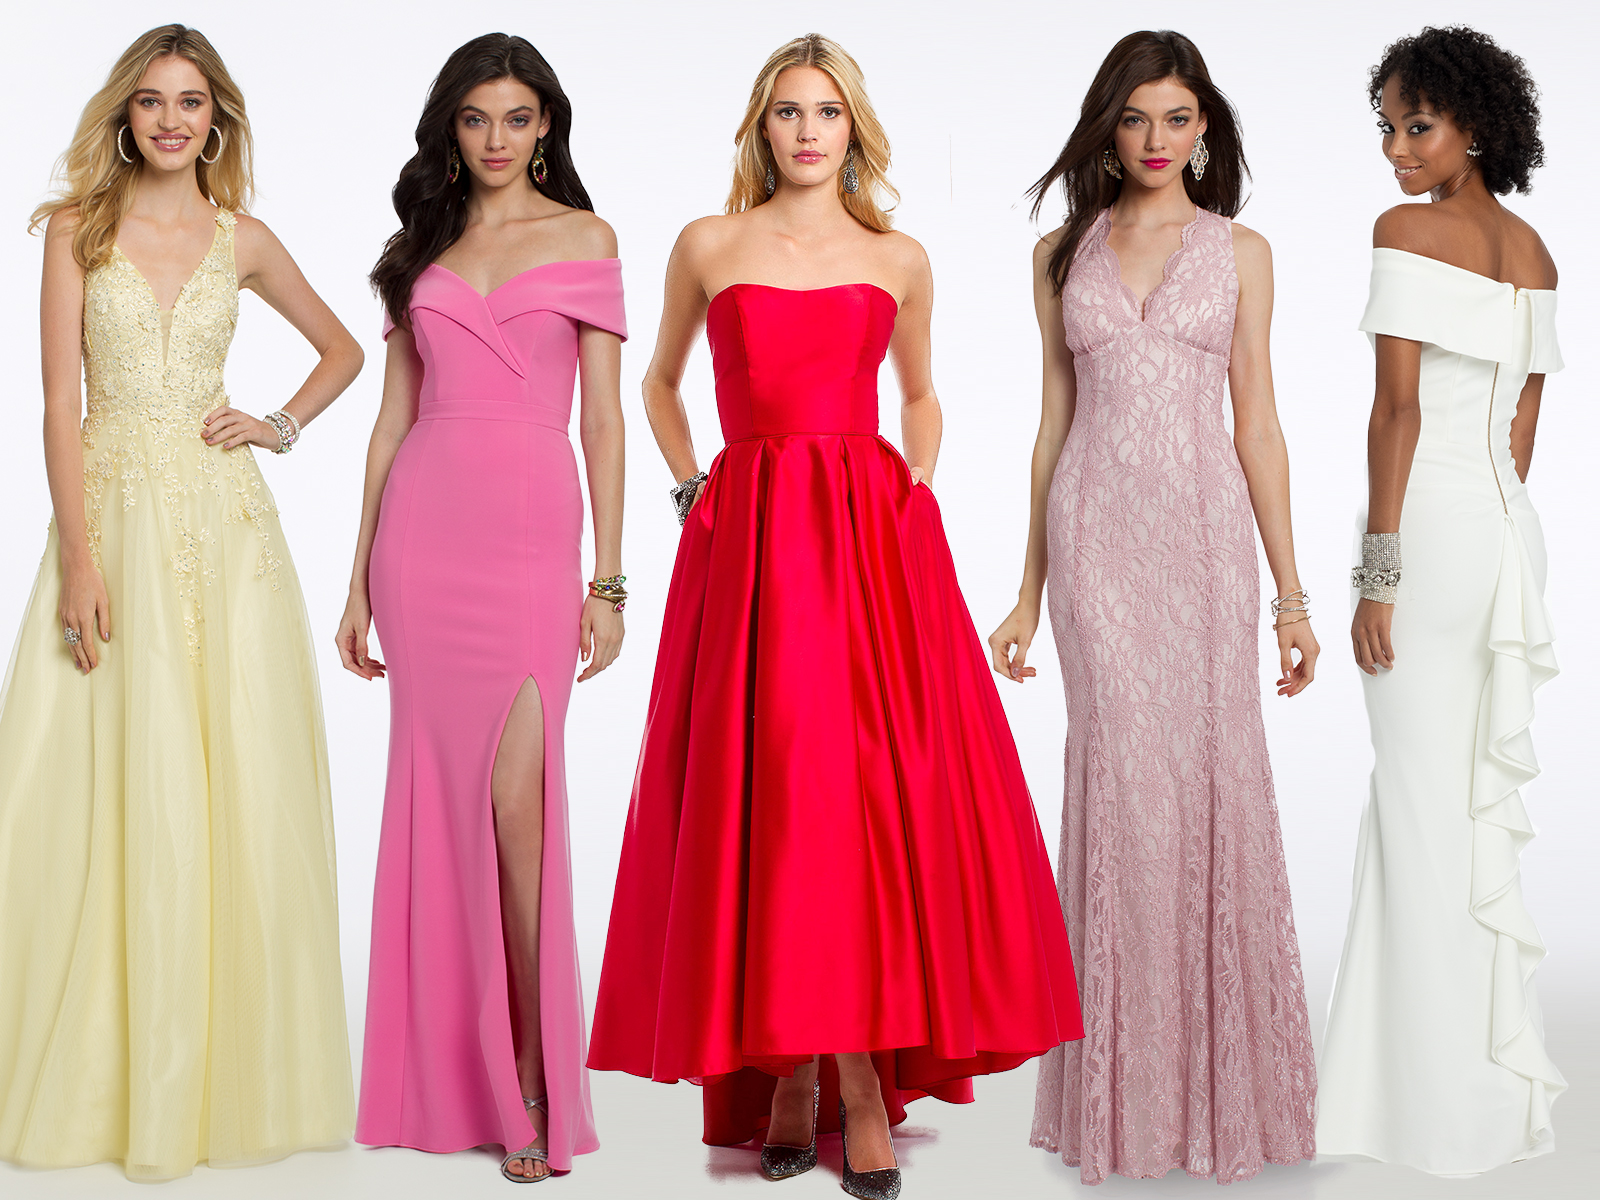 Best Selling Prom Dresses by Camille La Vie